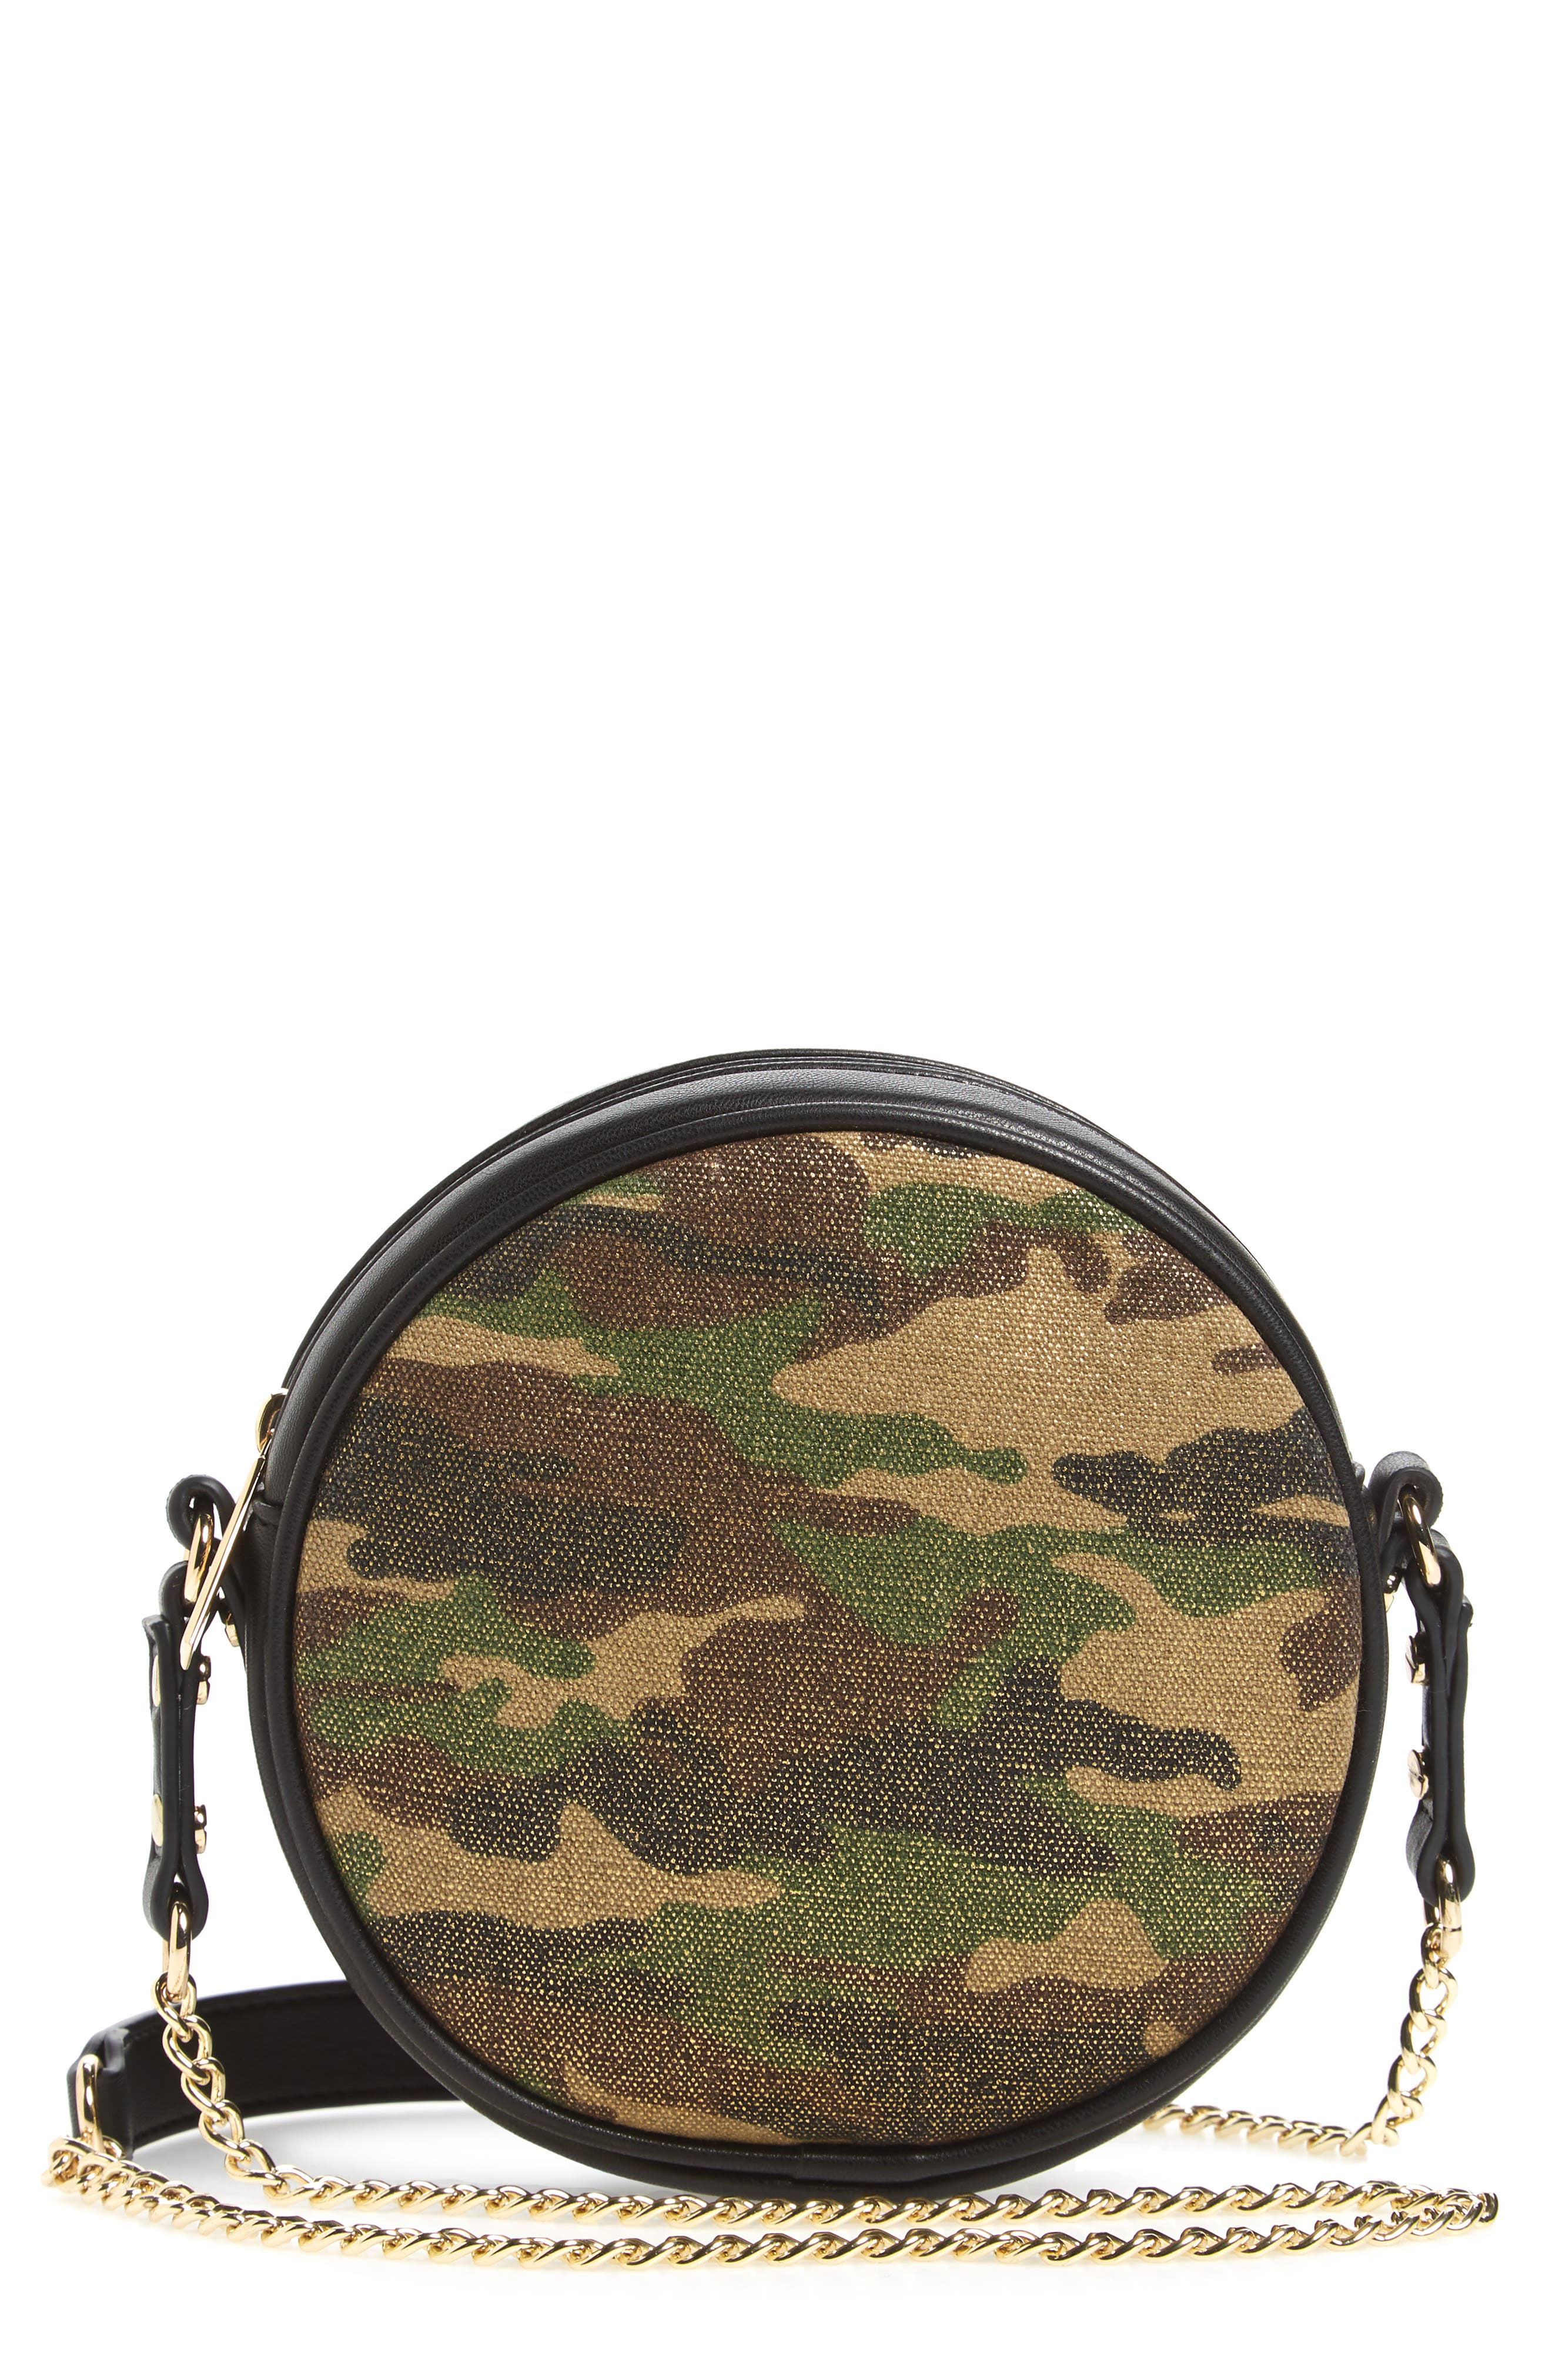 Mali + Lili Camouflage Vegan Leather Canteen Crossbody Bag,                         Main,                         color, Camouflage